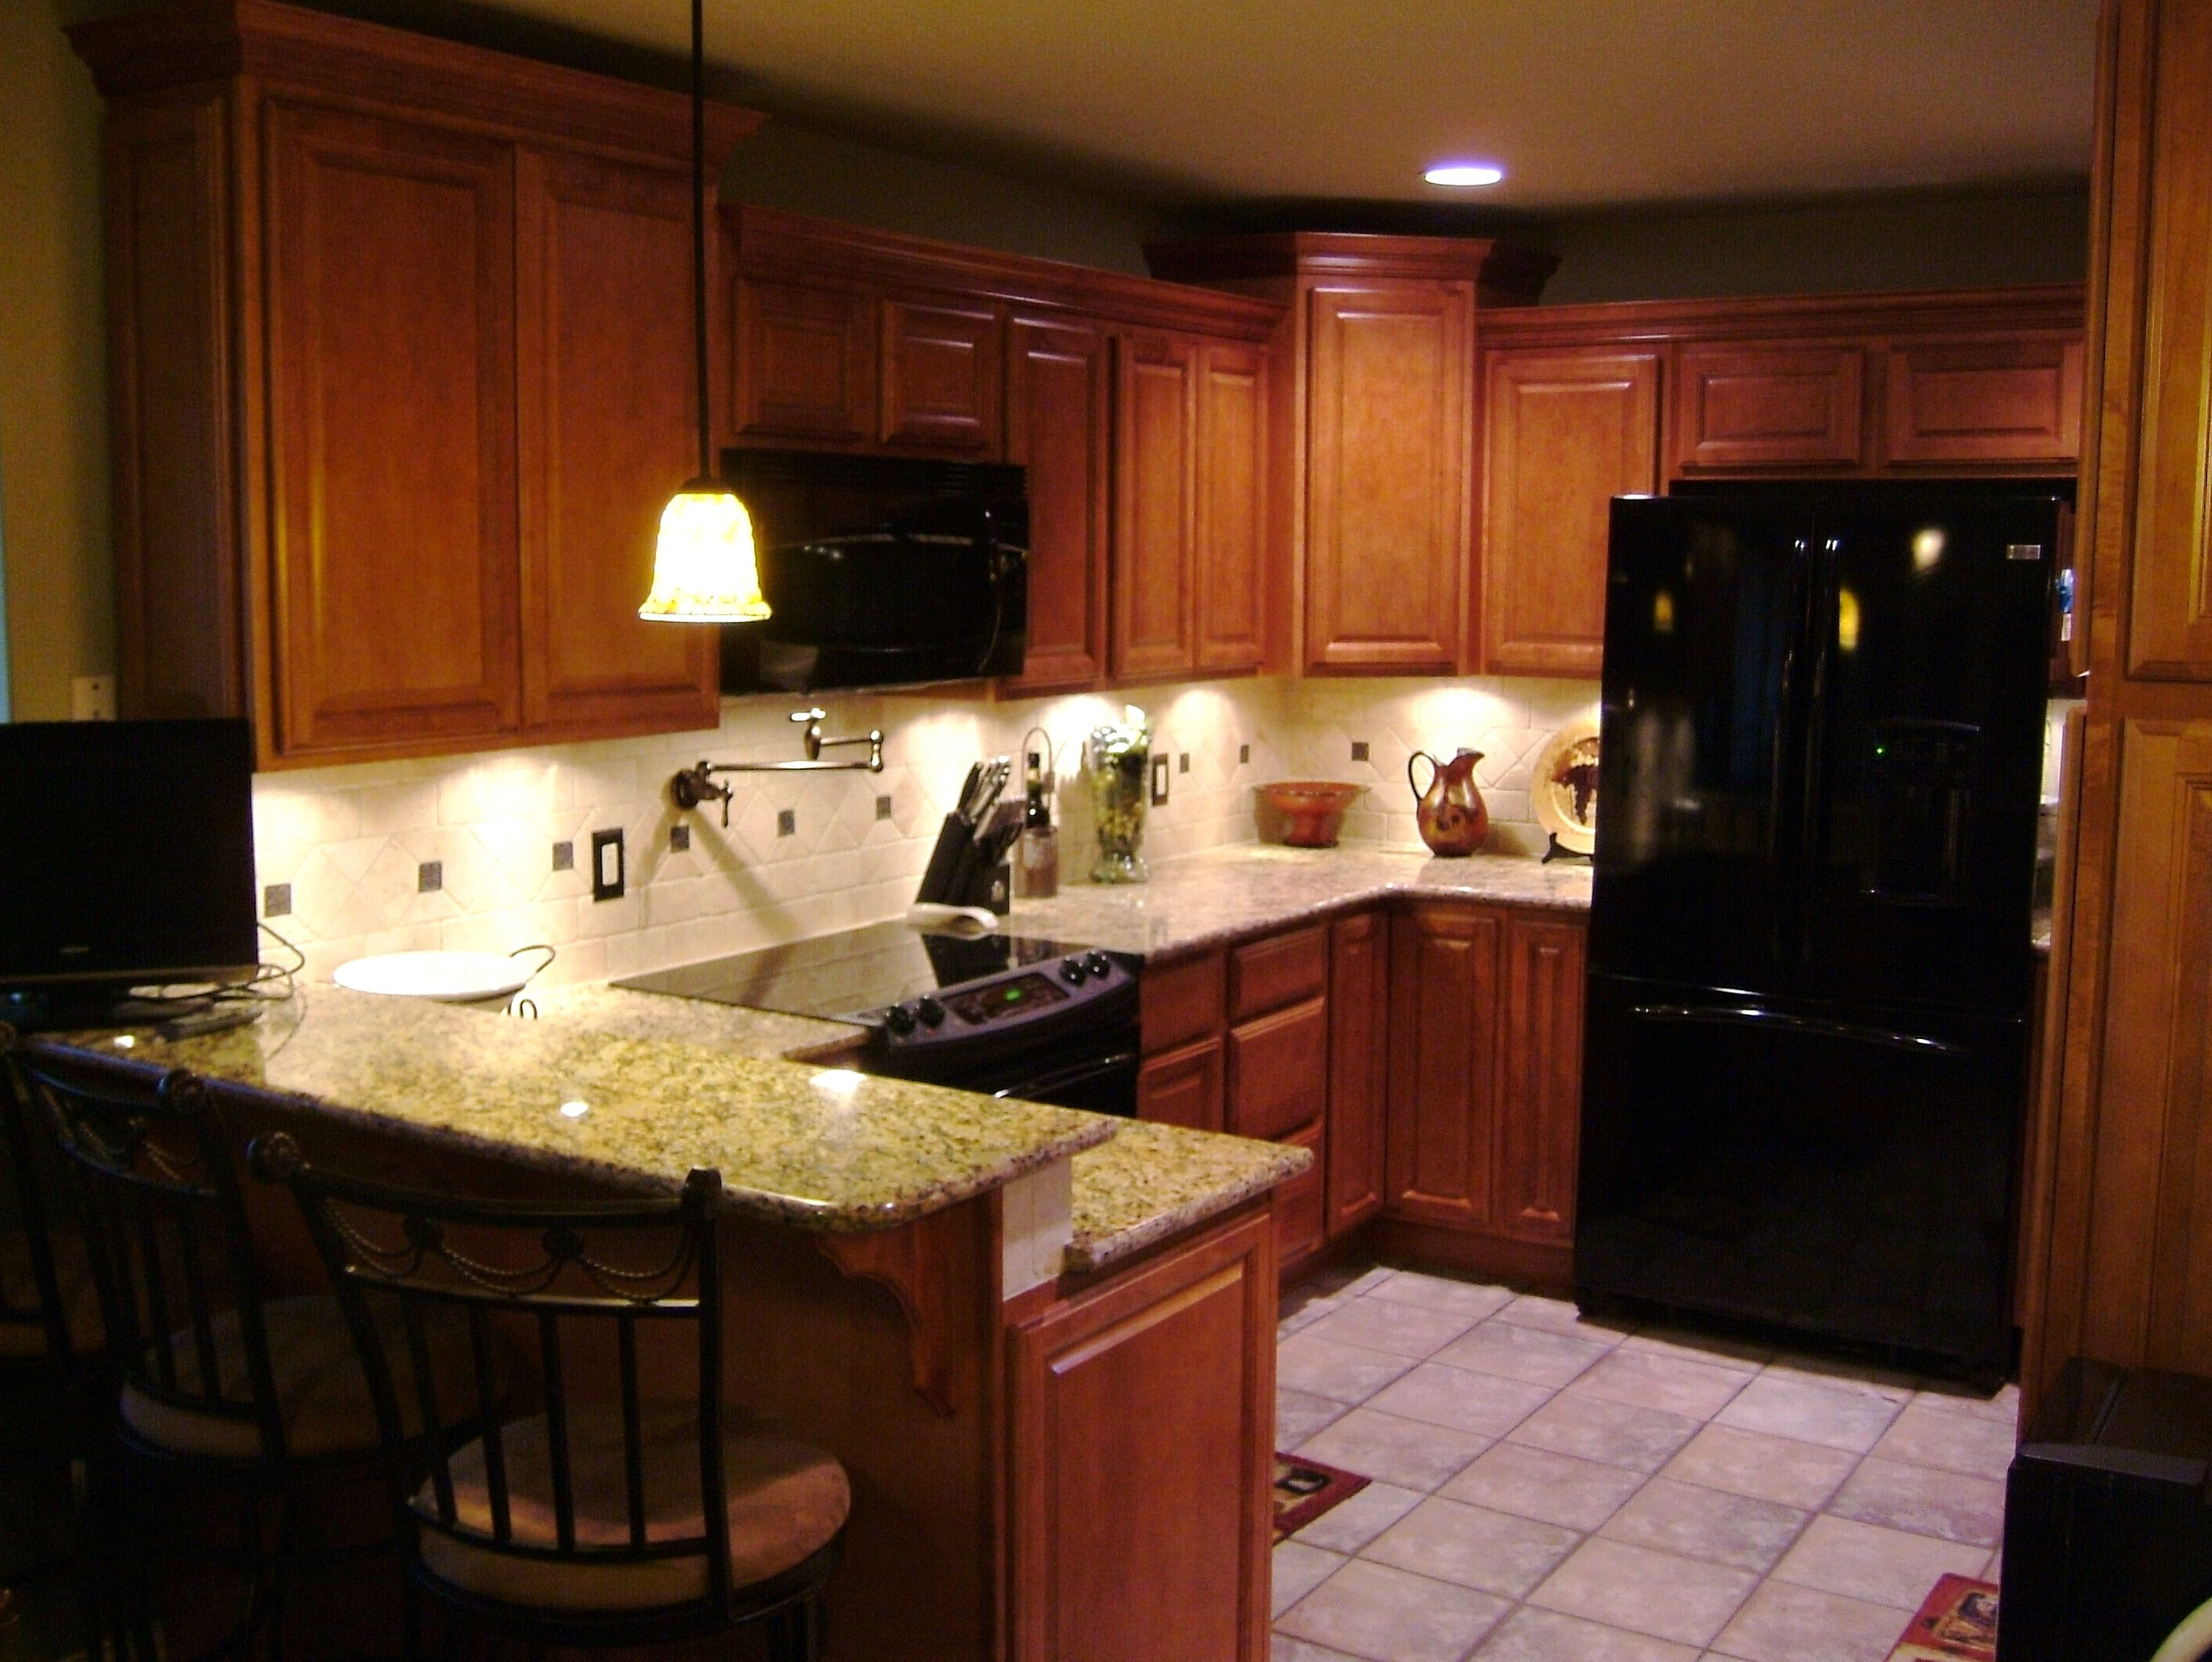 kitchen remodel okc ikea countertop oklahoma city edmond we removed a fluorescent light grid and ceiling fur